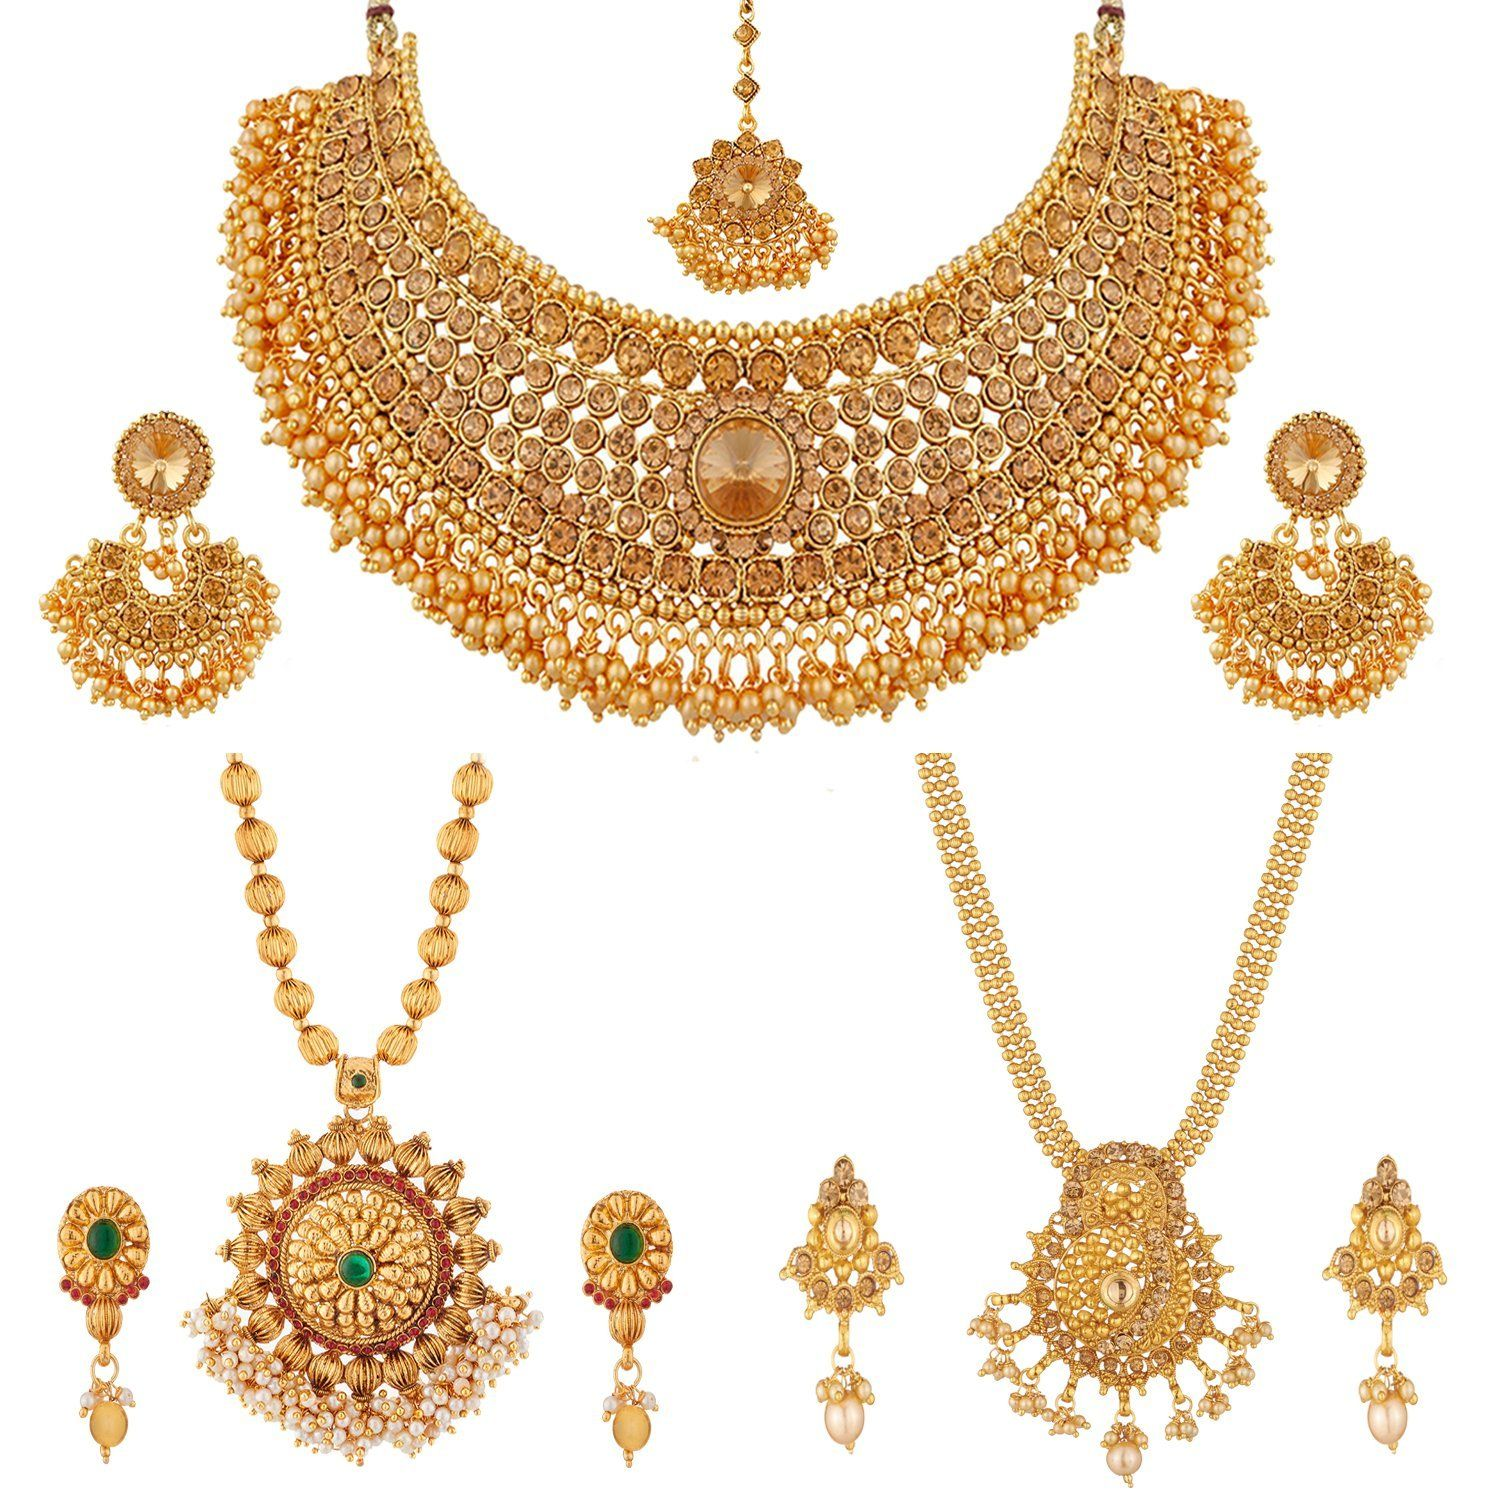 Necklace And Long Mala Jewellery Combo With Pearl For Women Mala Jewelry Antique Bridal Jewelry Online Jewelry